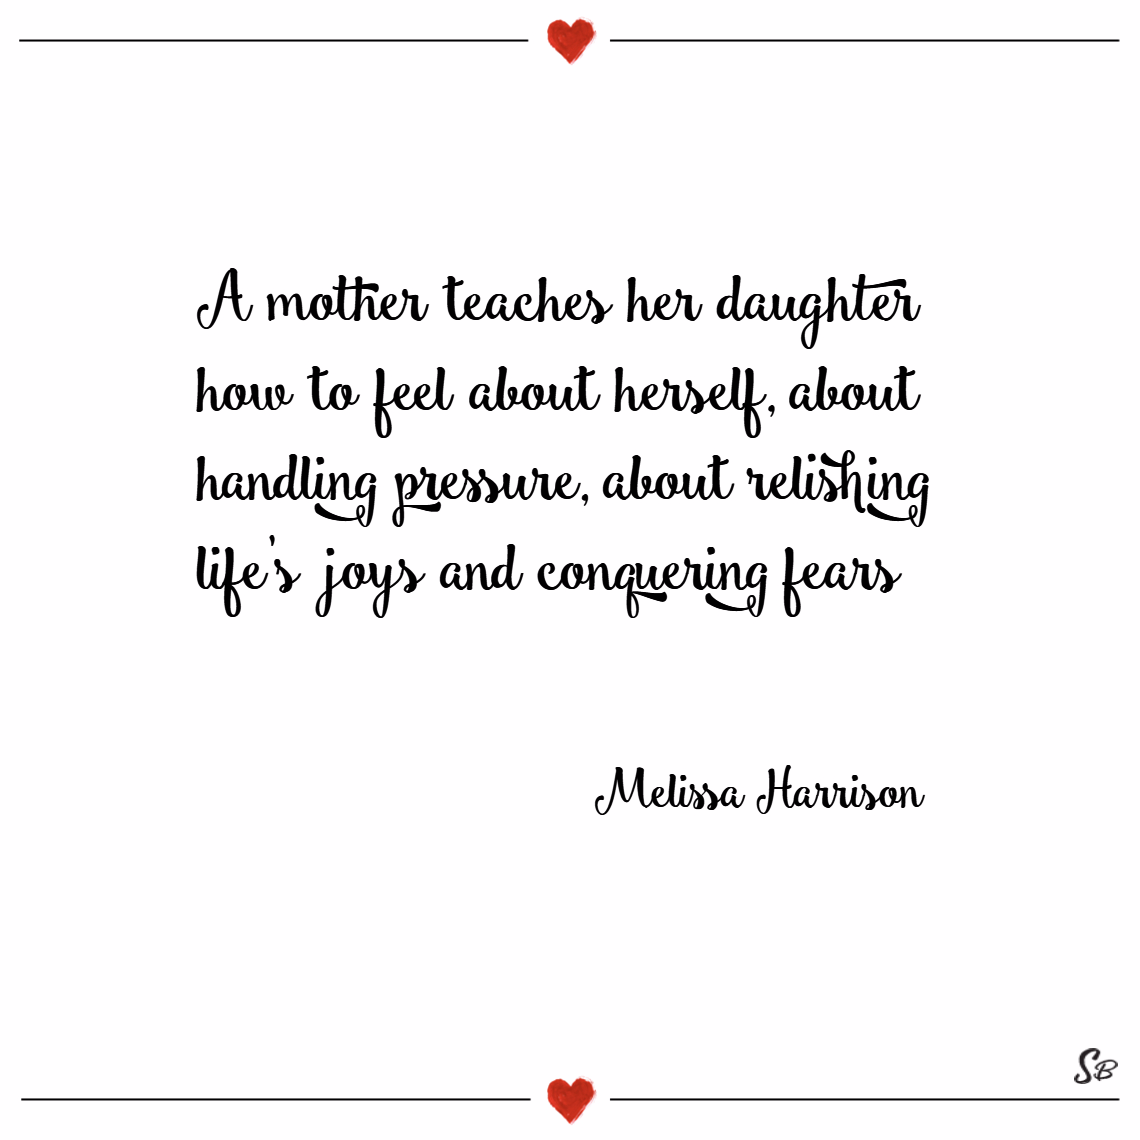 A mother teaches her daughter how to feel about herself, about handling pressure, about relishing life's joys and conquering fears. – melissa harrison